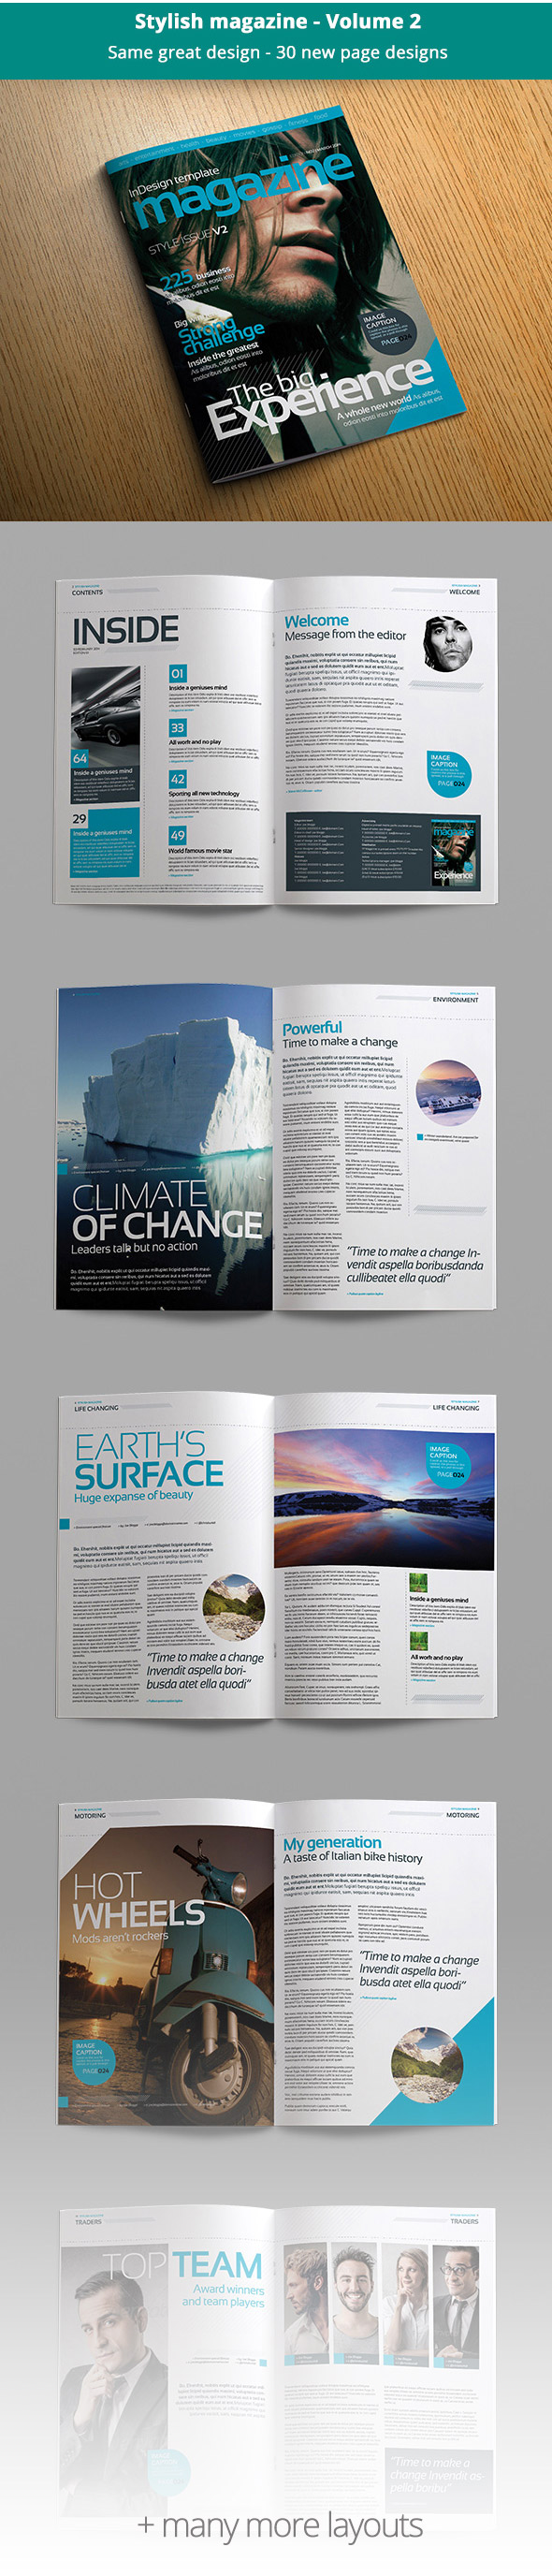 Stylish magazine template bundle preview spreads